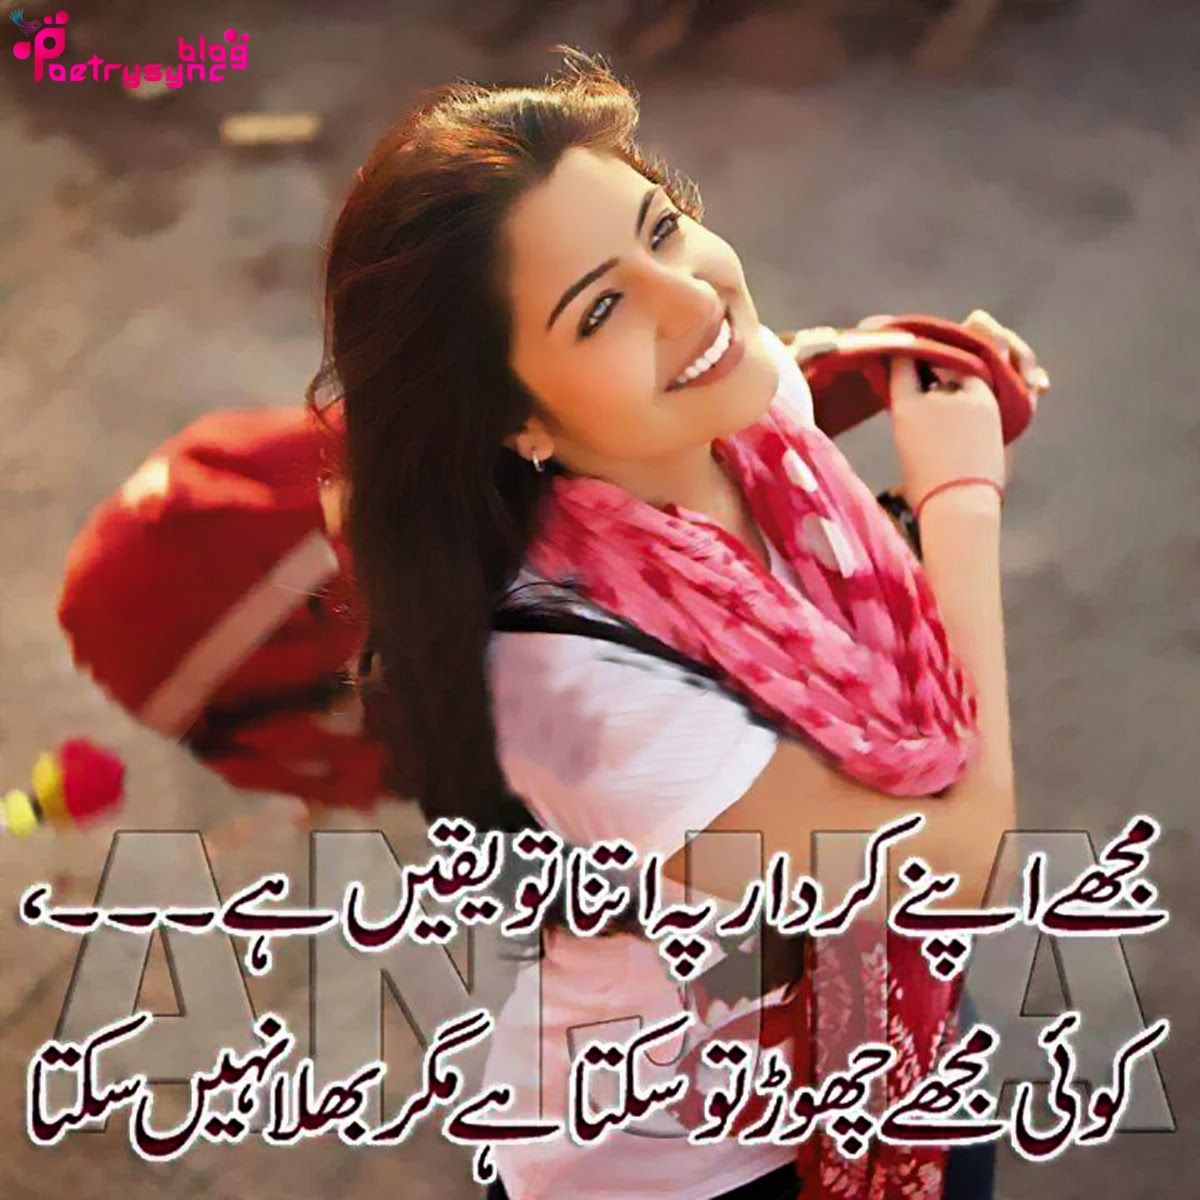 Love Romantic Shayari SMS in Urdu with Images Collection